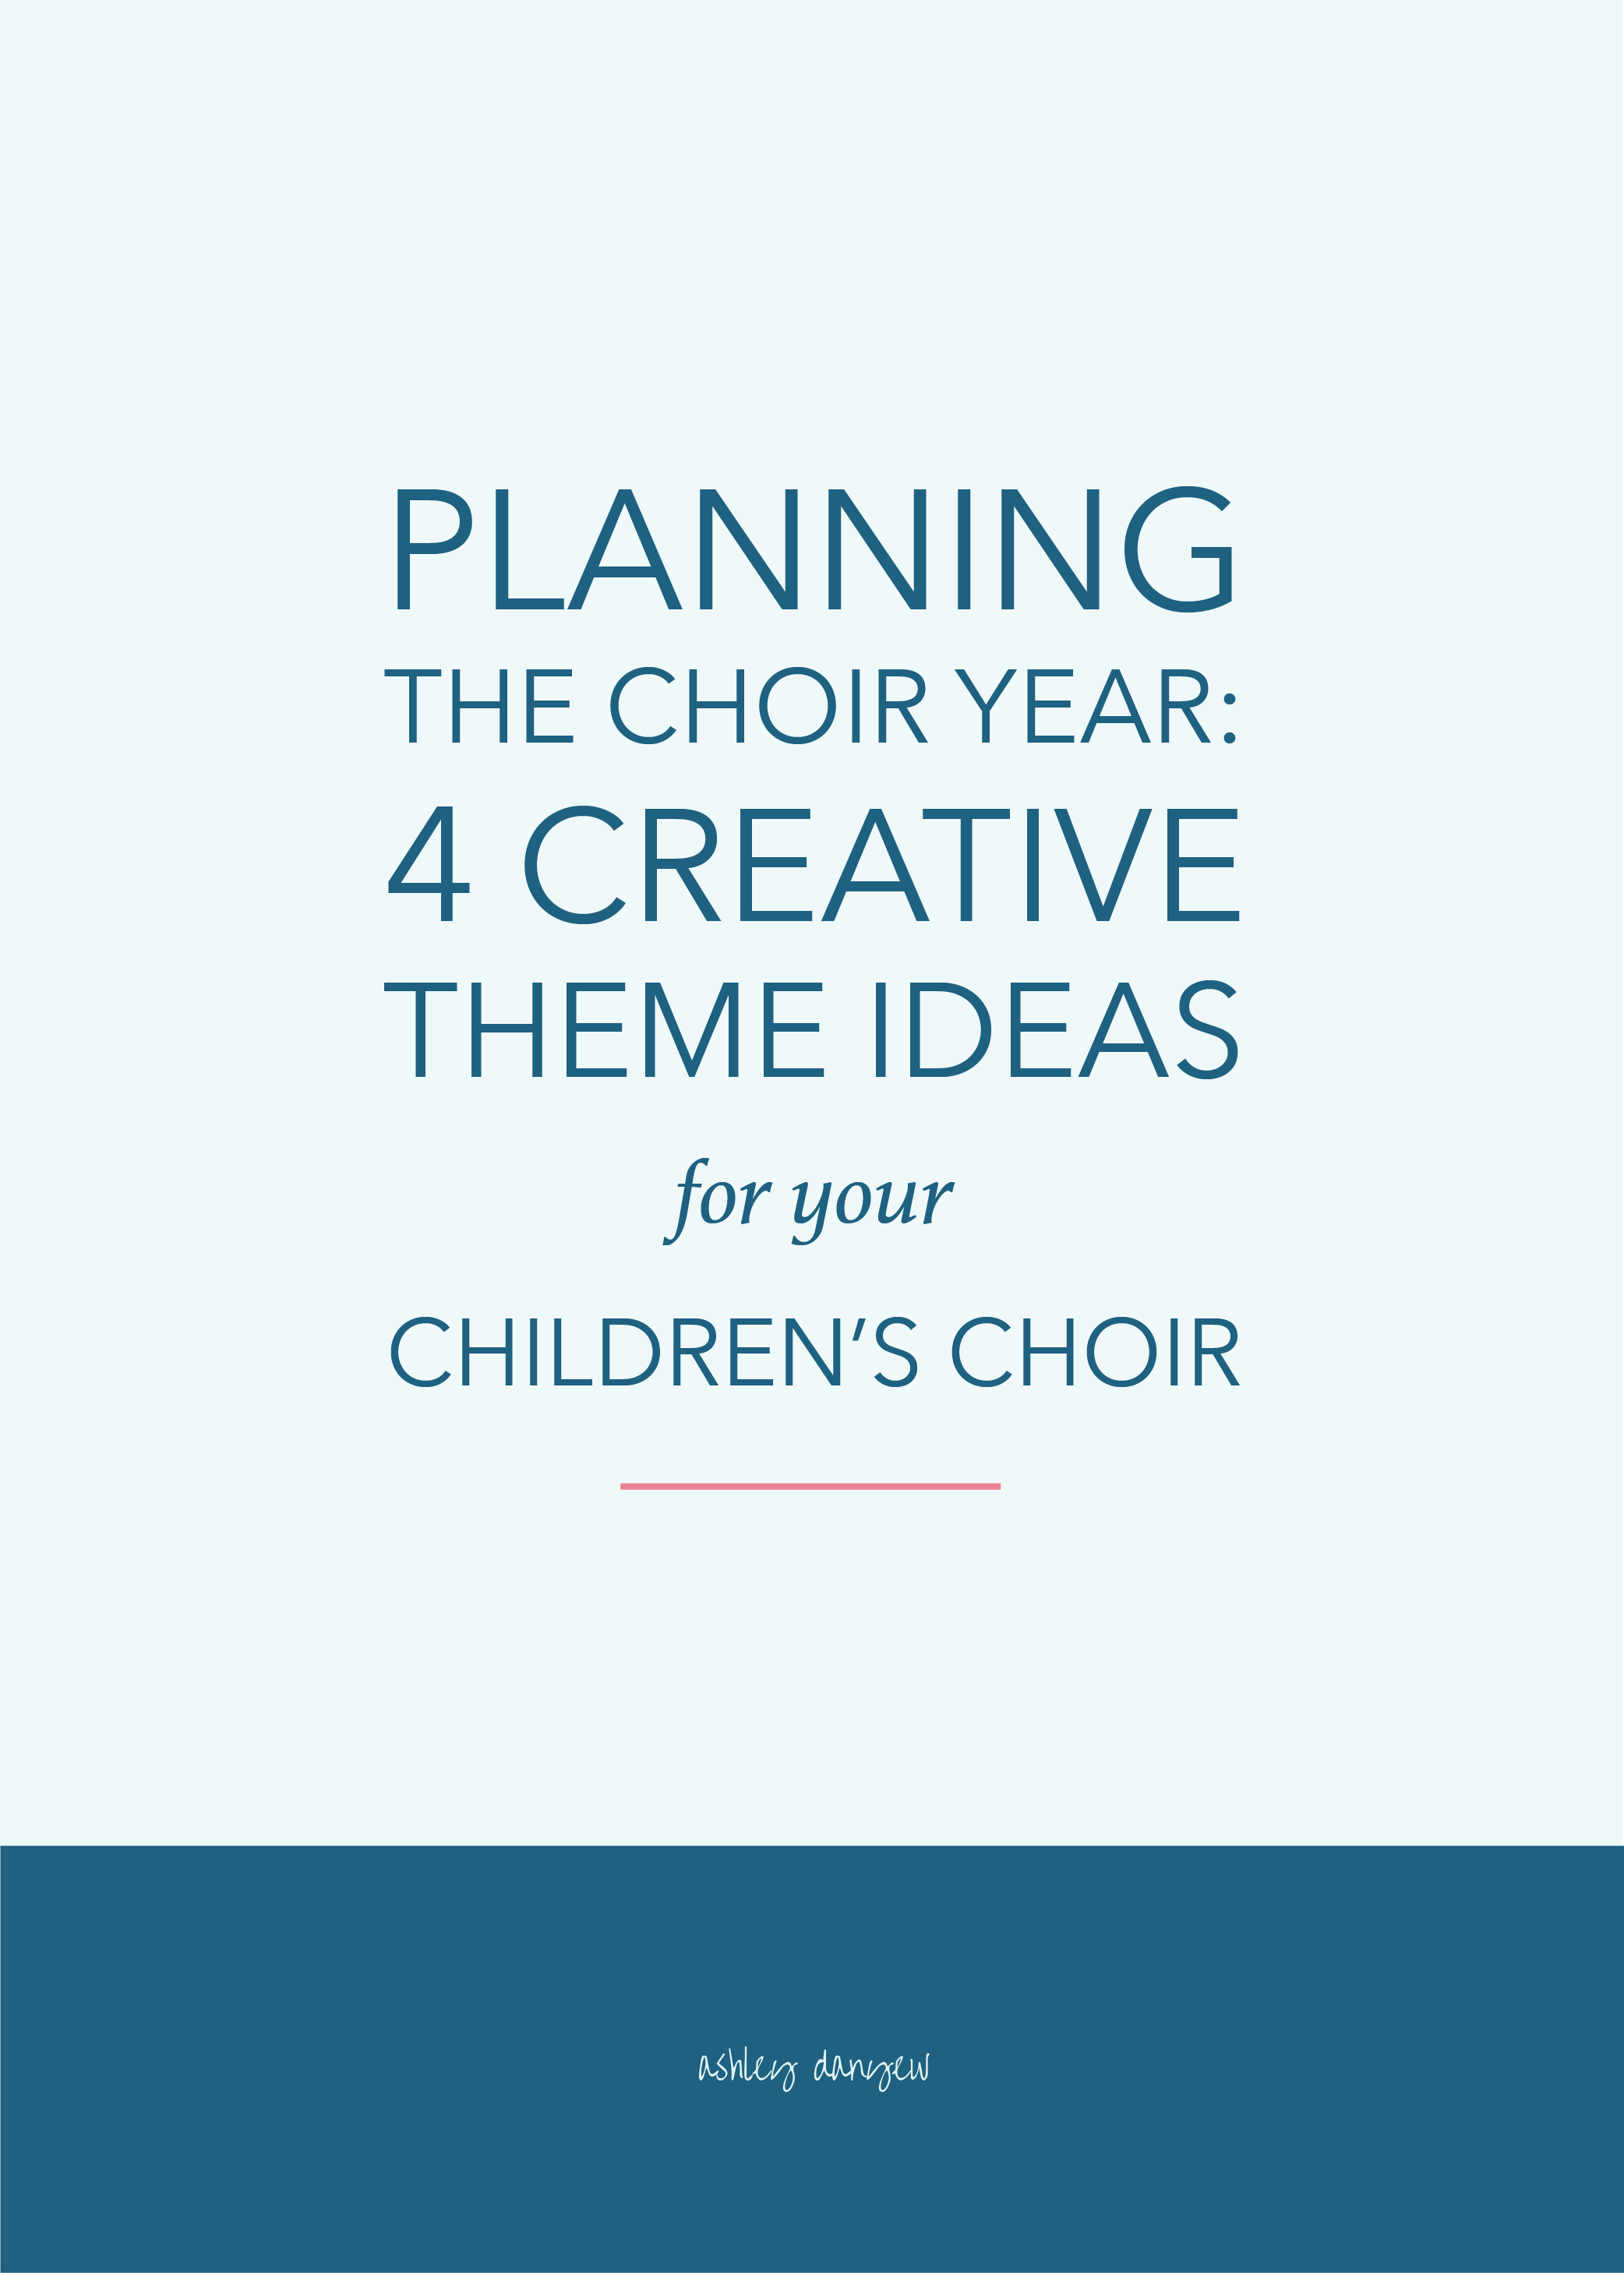 Planning the Choir Year - 4 Creative Theme Ideas for Your Children's Choir-31.png